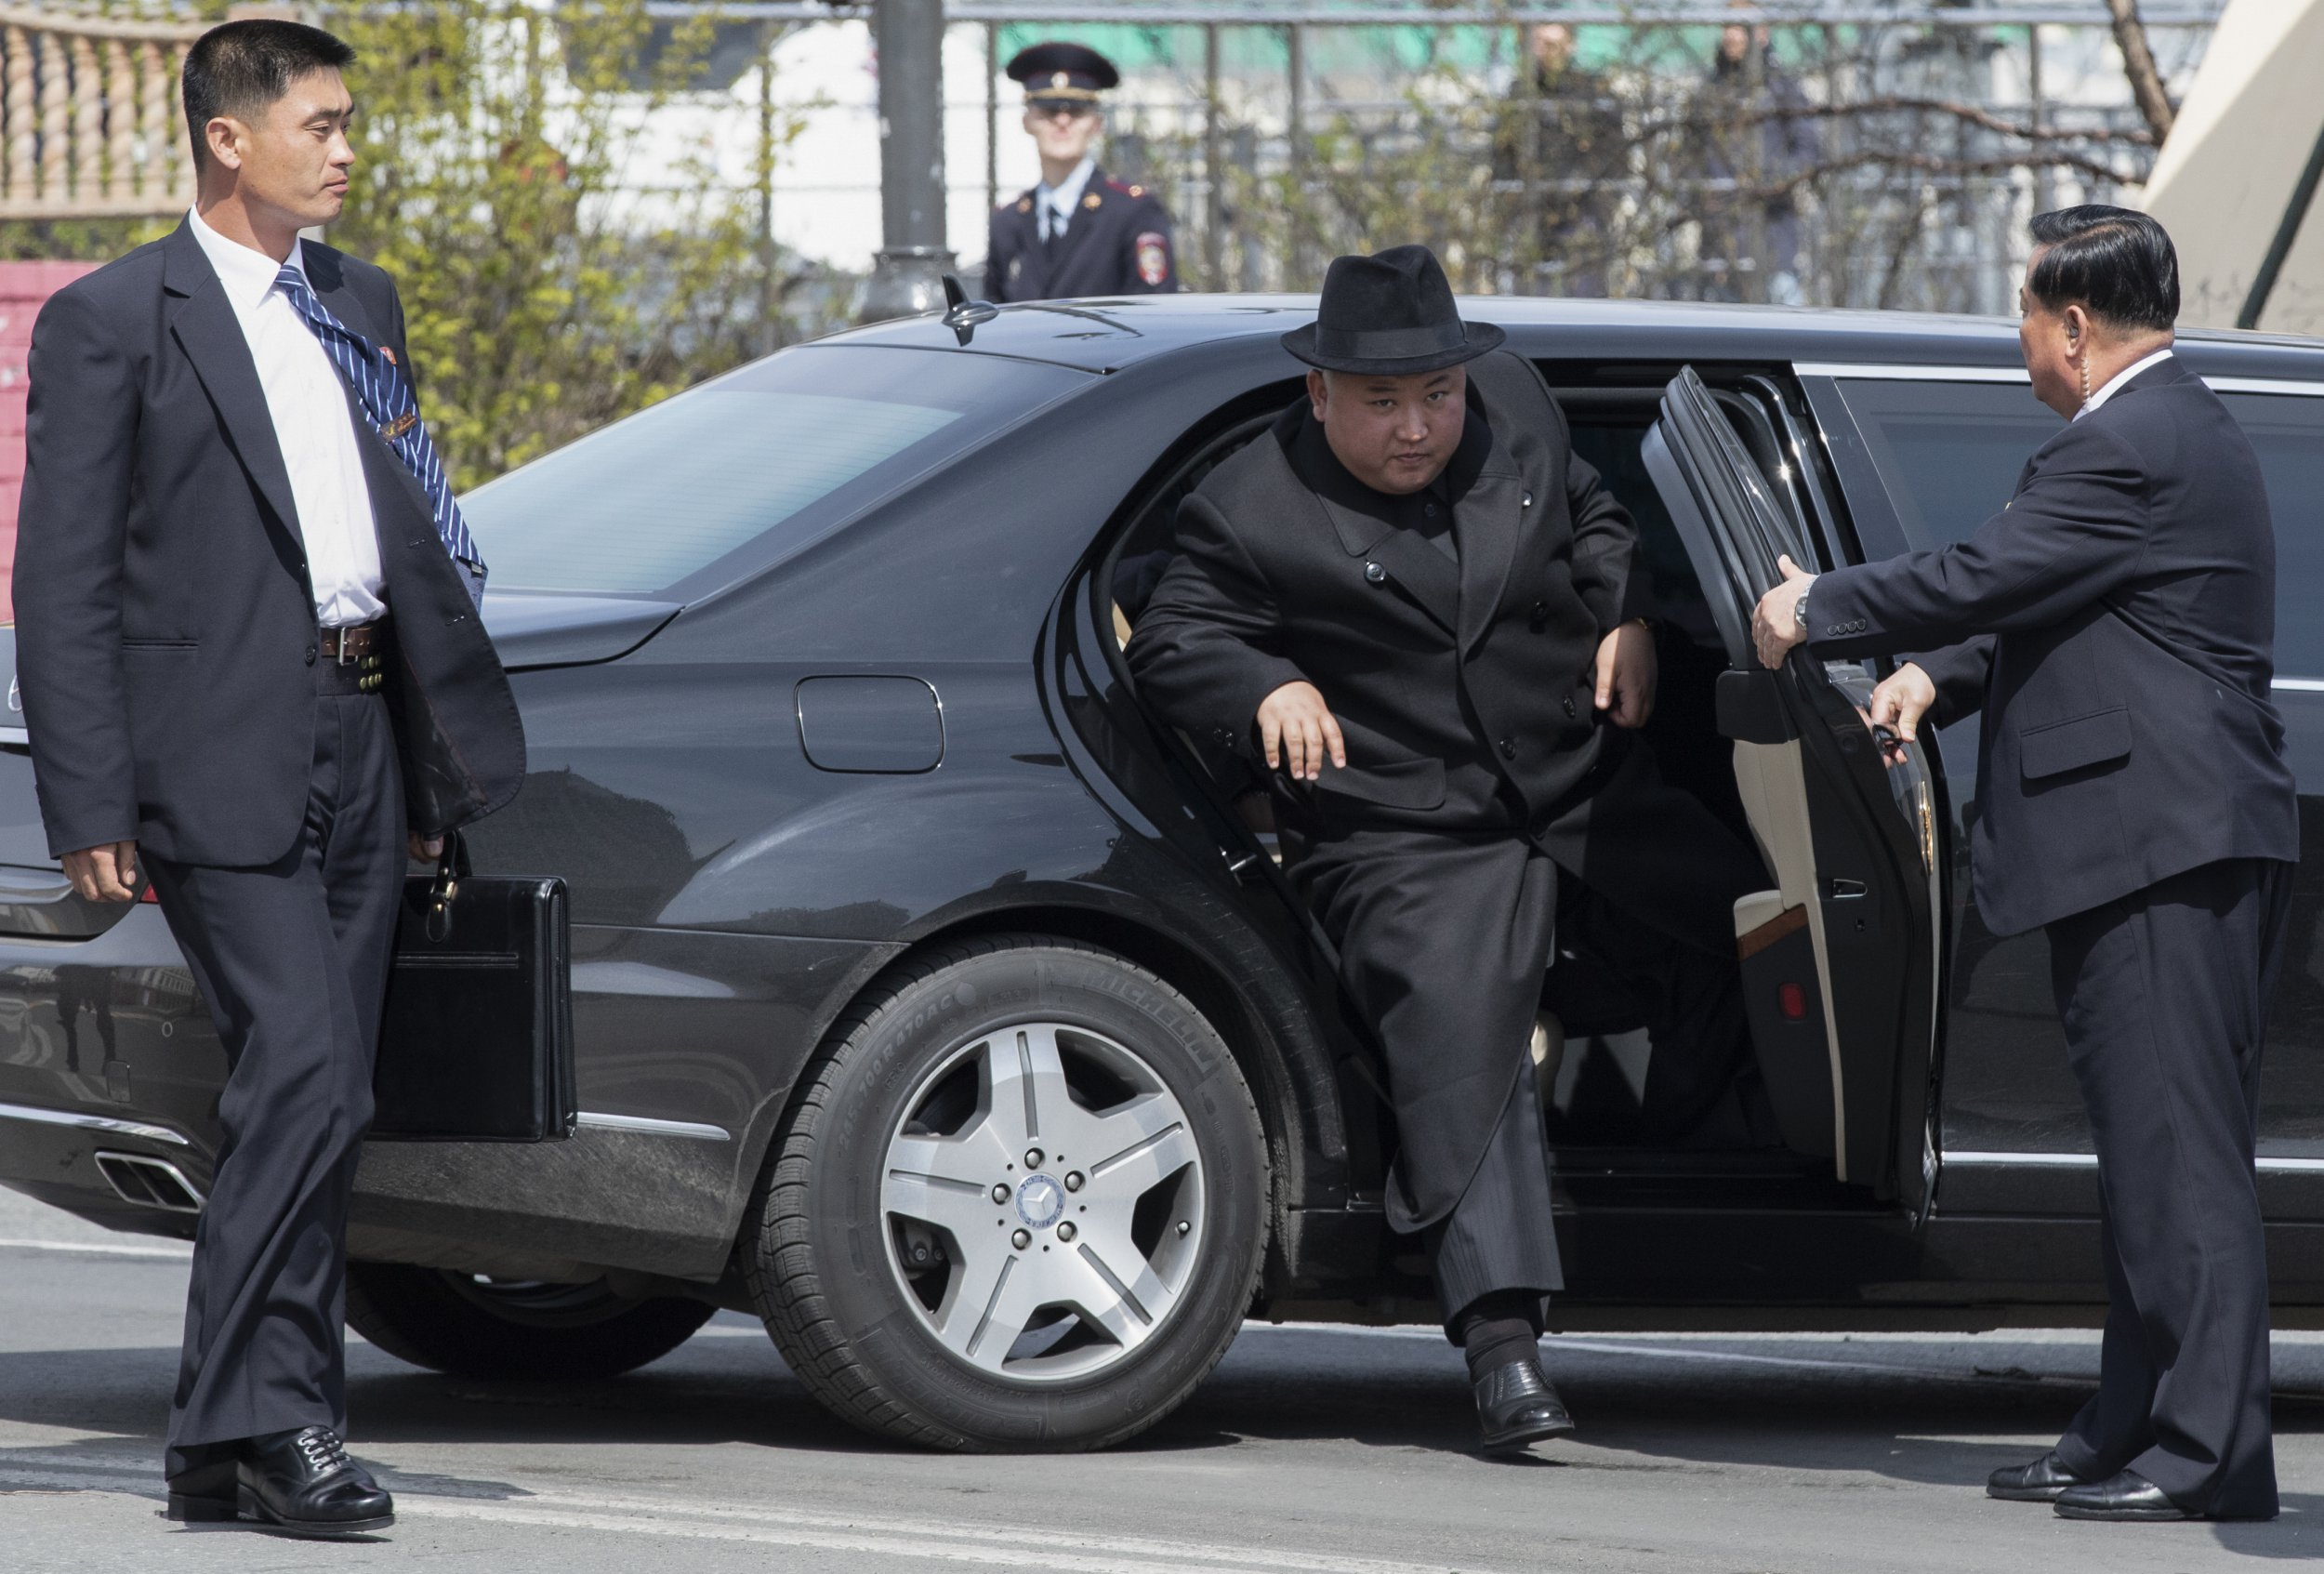 North Korean leader Kim Jong Un, center, arrives at the main train station to leave Russia in Vladivostok, Russia, Friday, April 26, 2019. North Korean leader Kim Jong Un paid his respects at a ceremony honoring the war dead Friday before wrapping up a brief and generally successful visit to the Russian Far East for his first summit with President Vladimir Putin. (AP Photo/Alexander Khitrov)